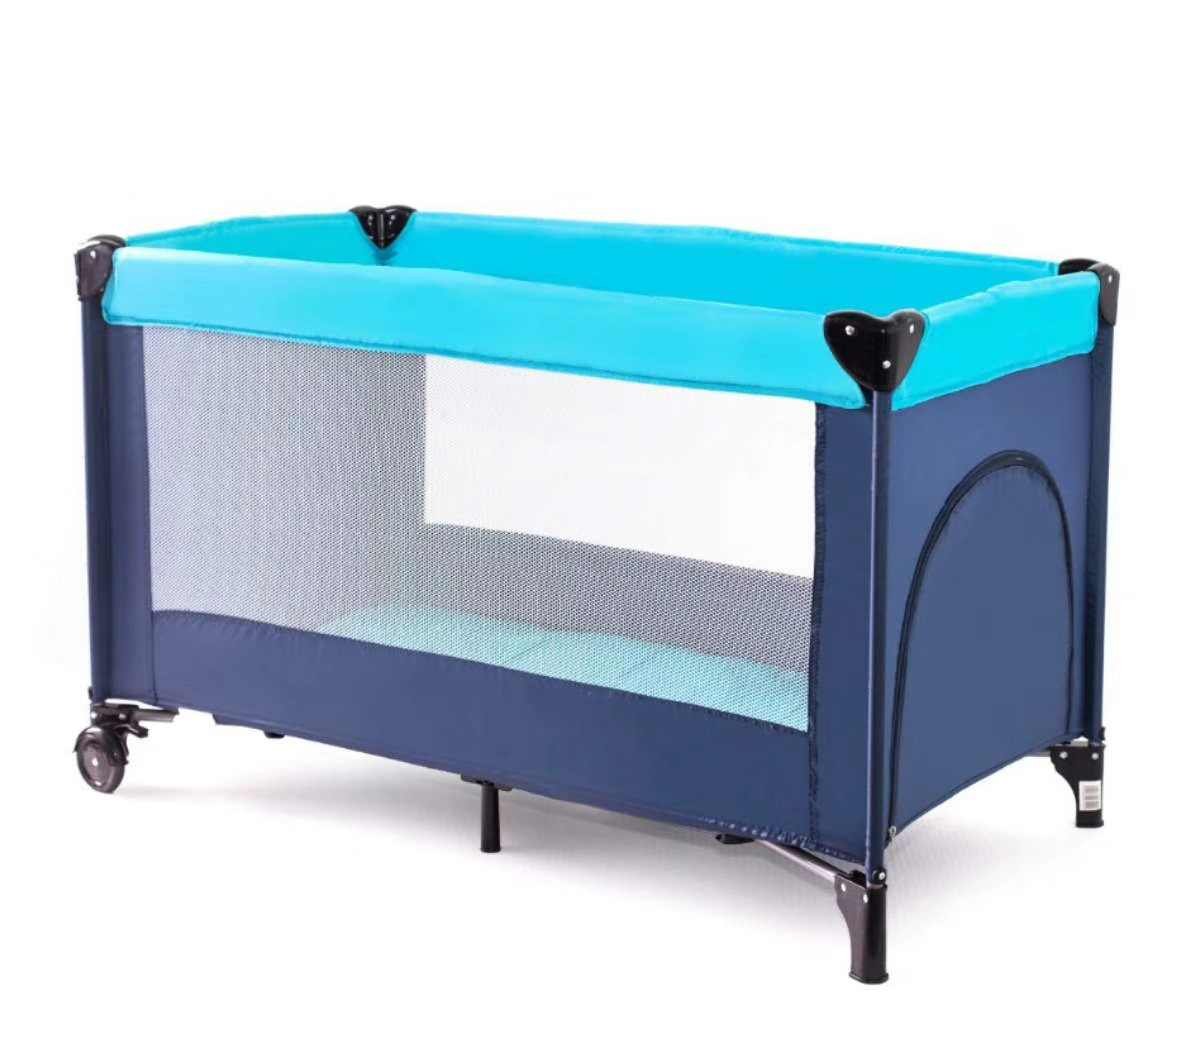 Crib Multifunctional Detachable Portable Folding Baby Game Cot Kids Bed Toddler Bed Baby Furniture Children Beds Aliexpress